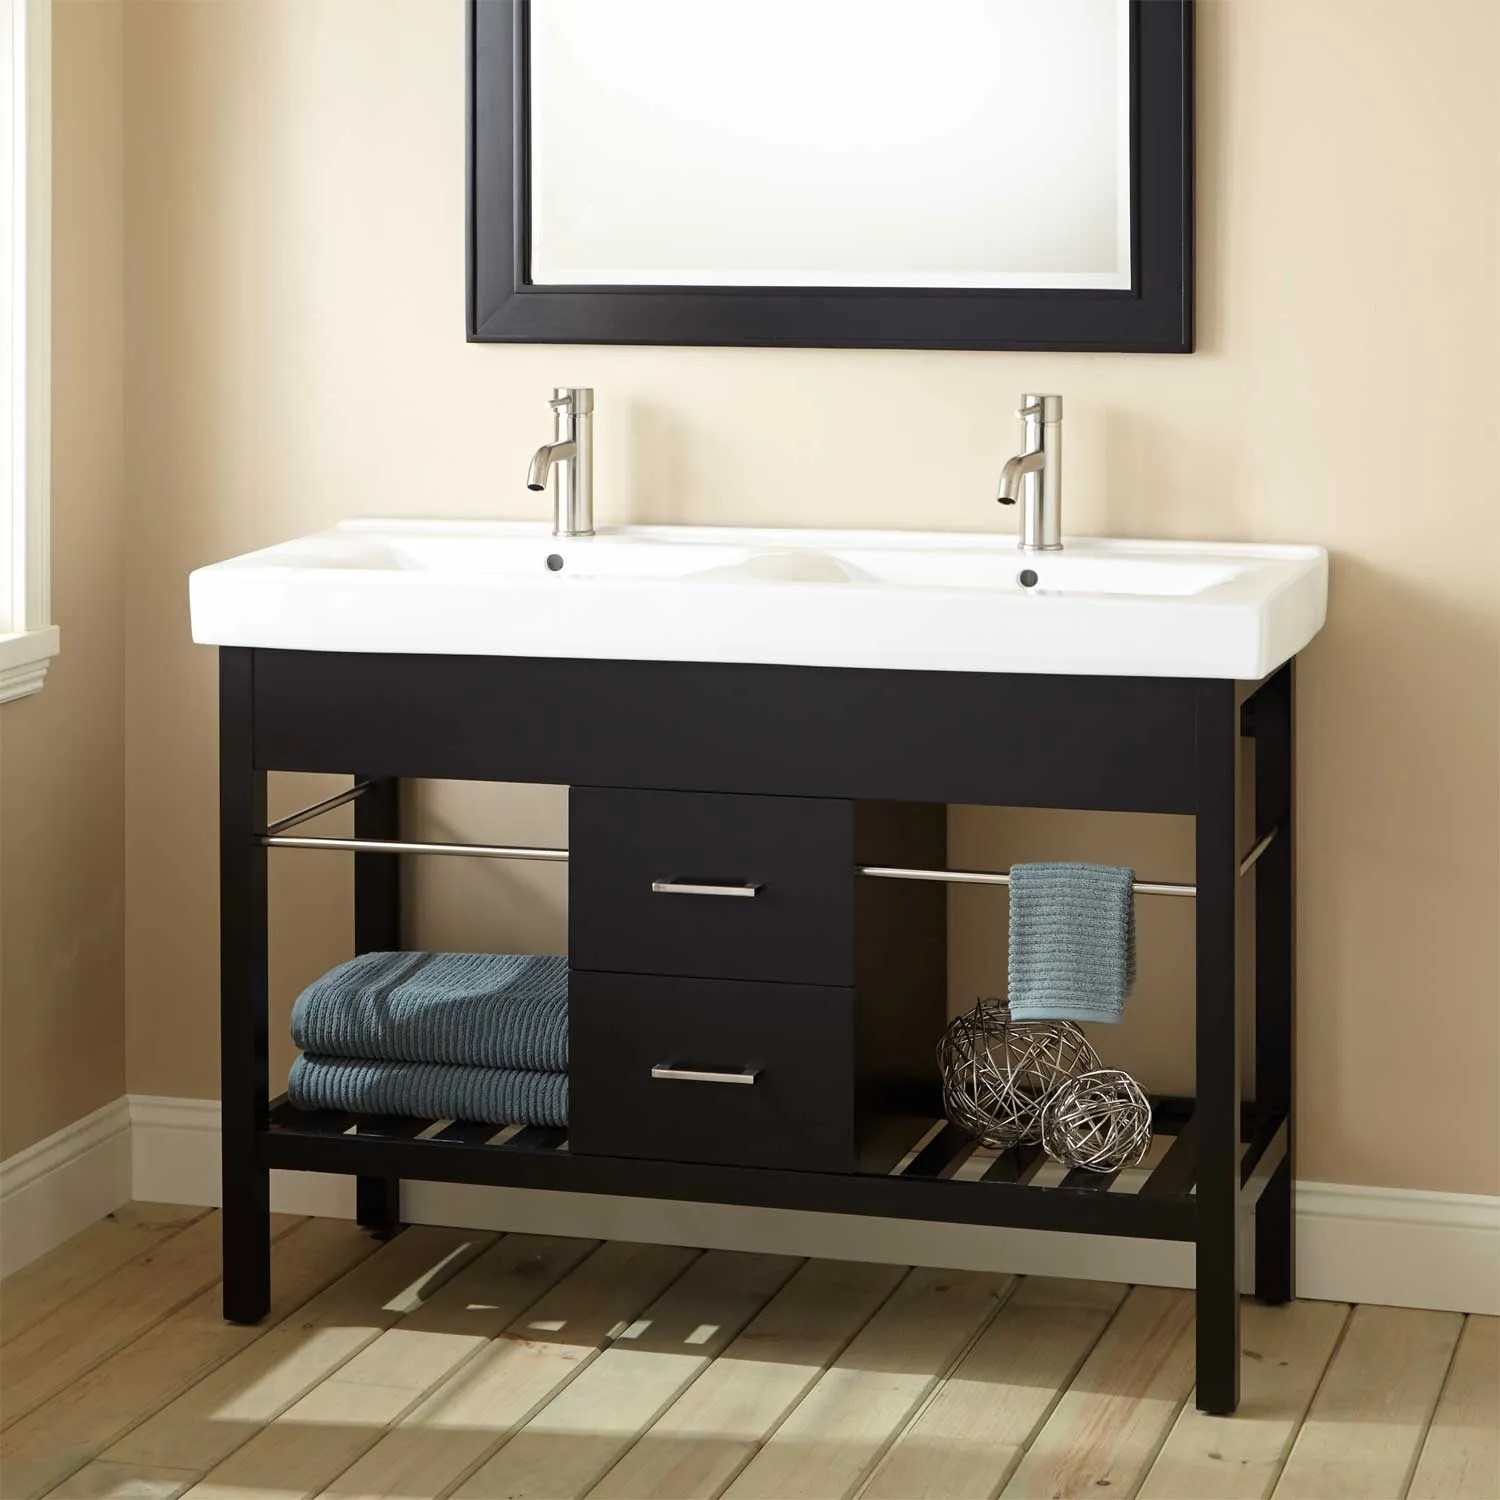 Double Sink Freestanding Vanity  Signaturehardwarecom